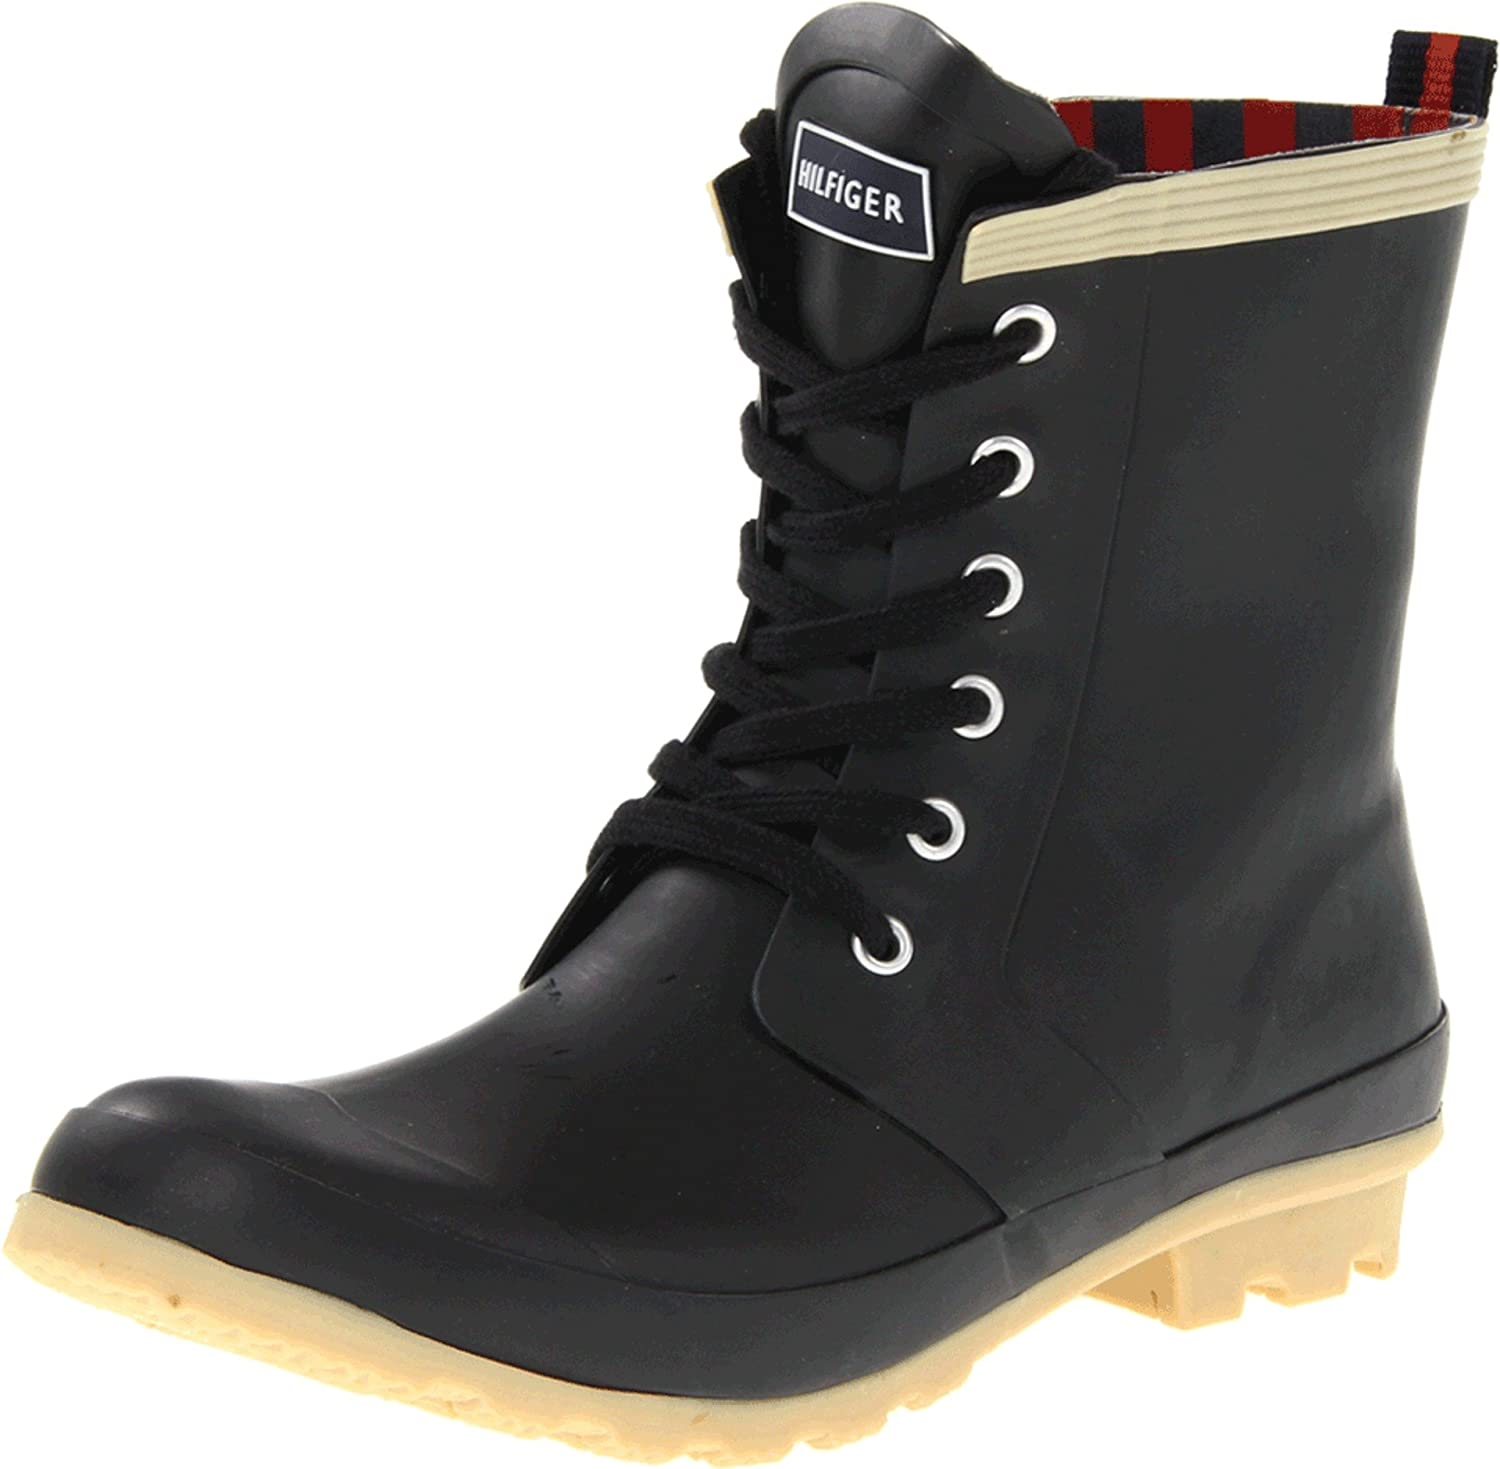 Tommy Hilfiger Women's Renegade Rainboot